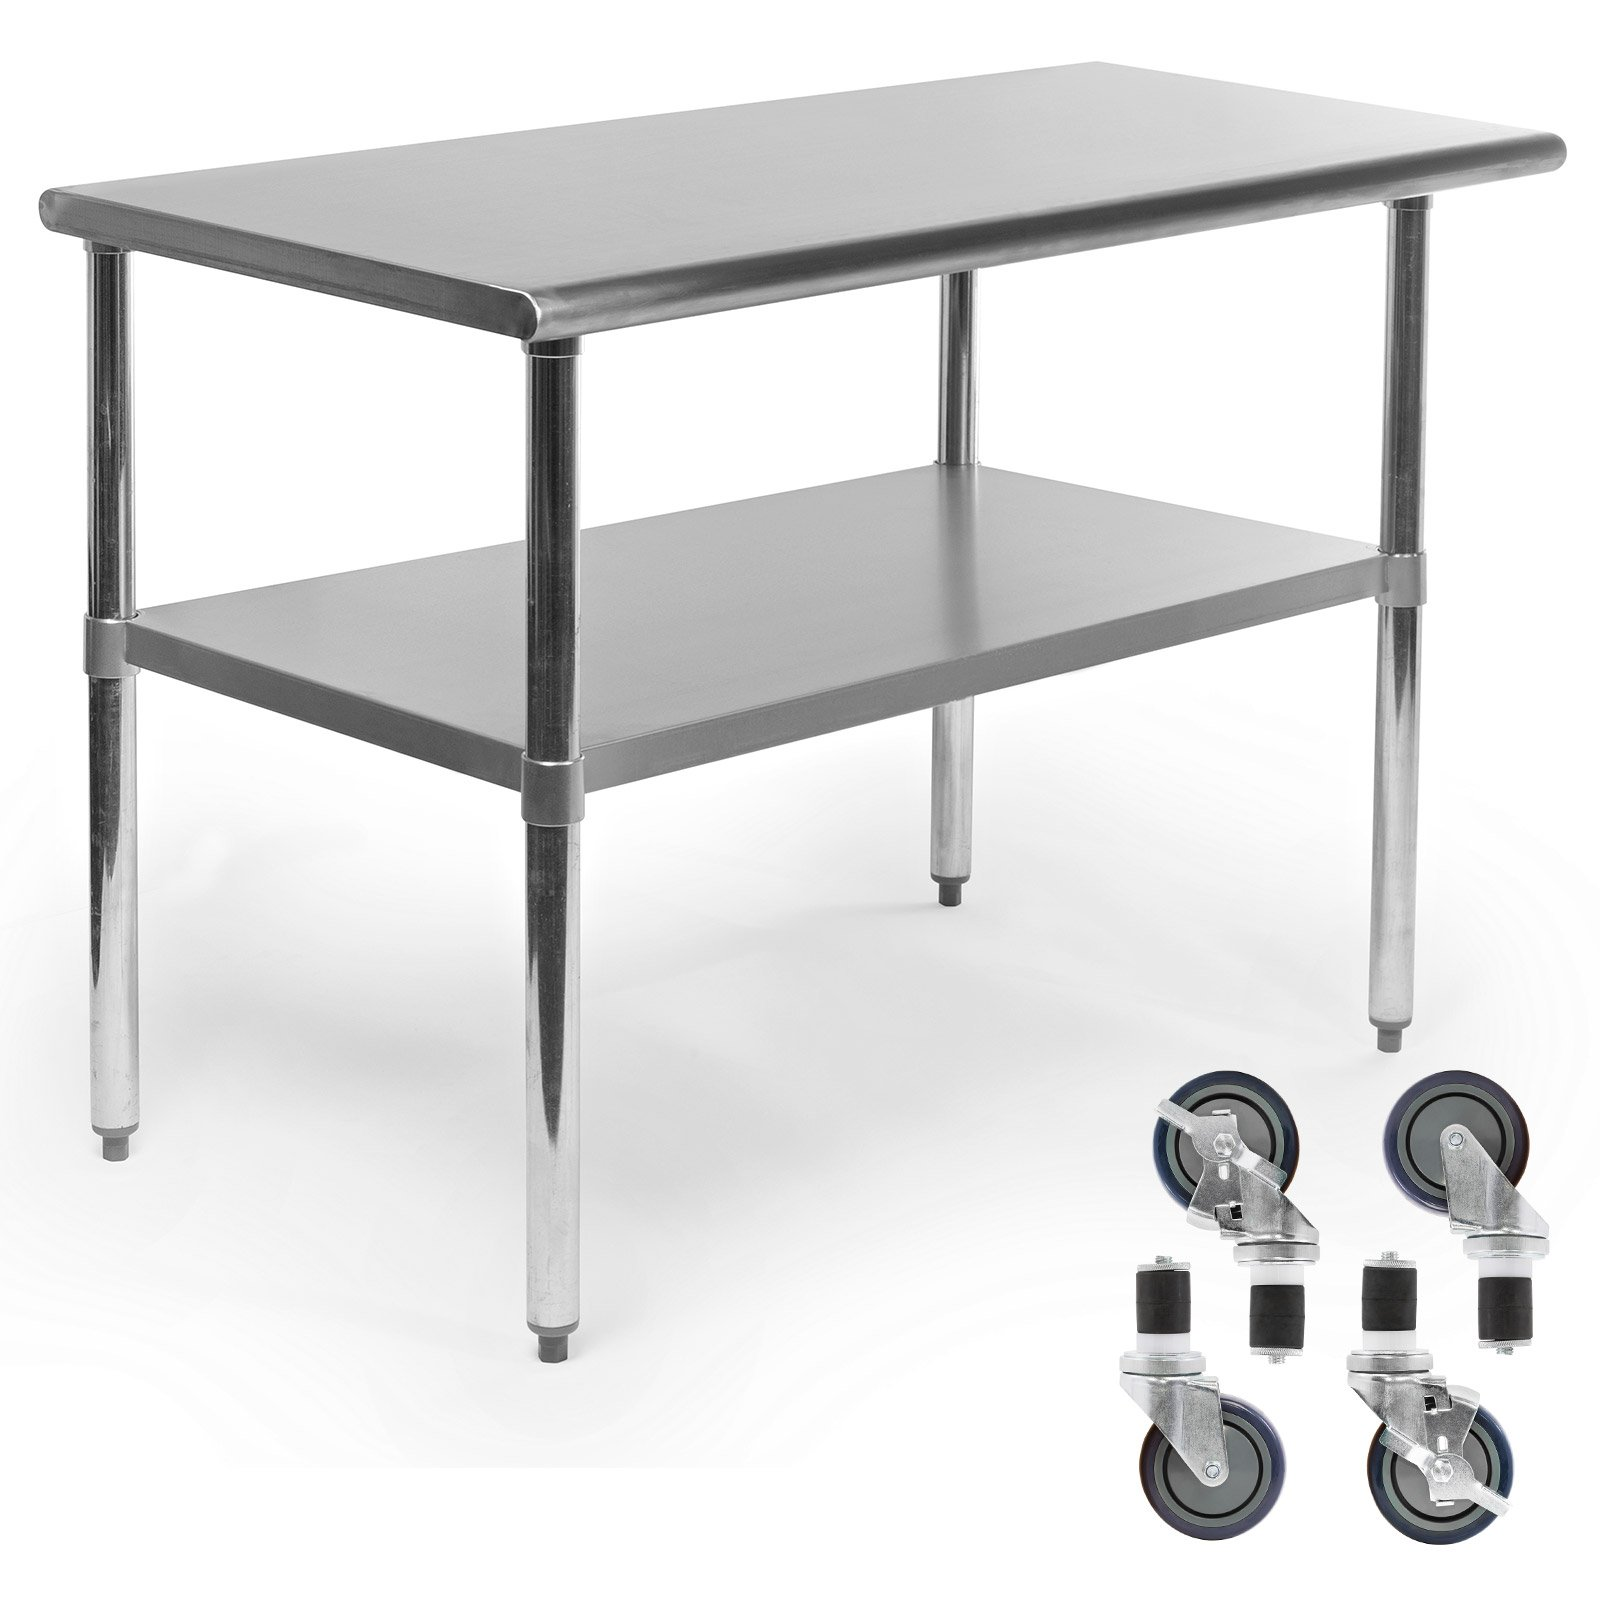 Gridmann NSF Stainless Steel Commercial Kitchen Prep & Work Table w/ 4 Casters (Wheels) - 48 in. x 24 in. by Gridmann (Image #1)